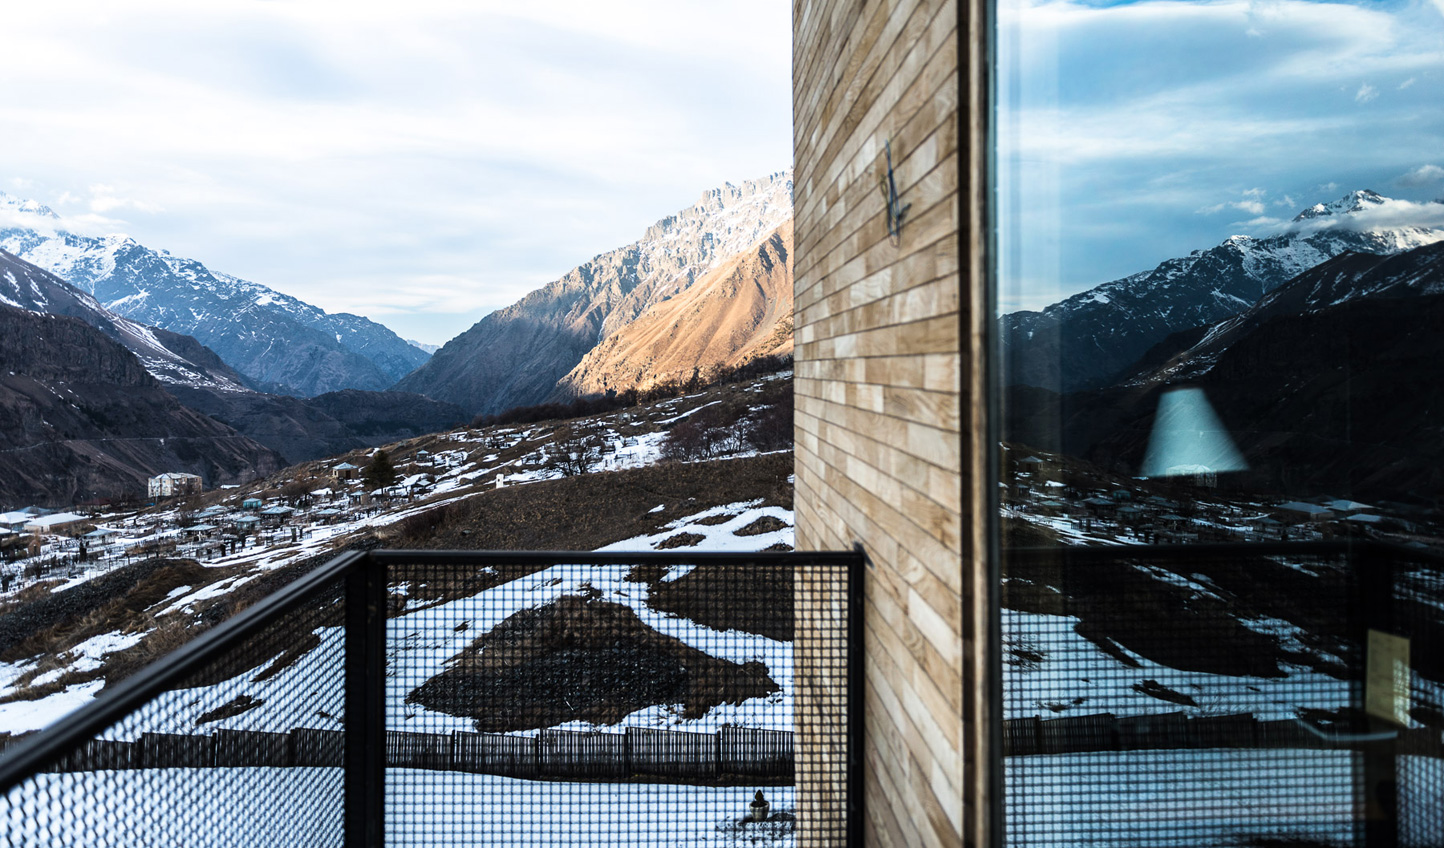 Soak in the all-encompassing views